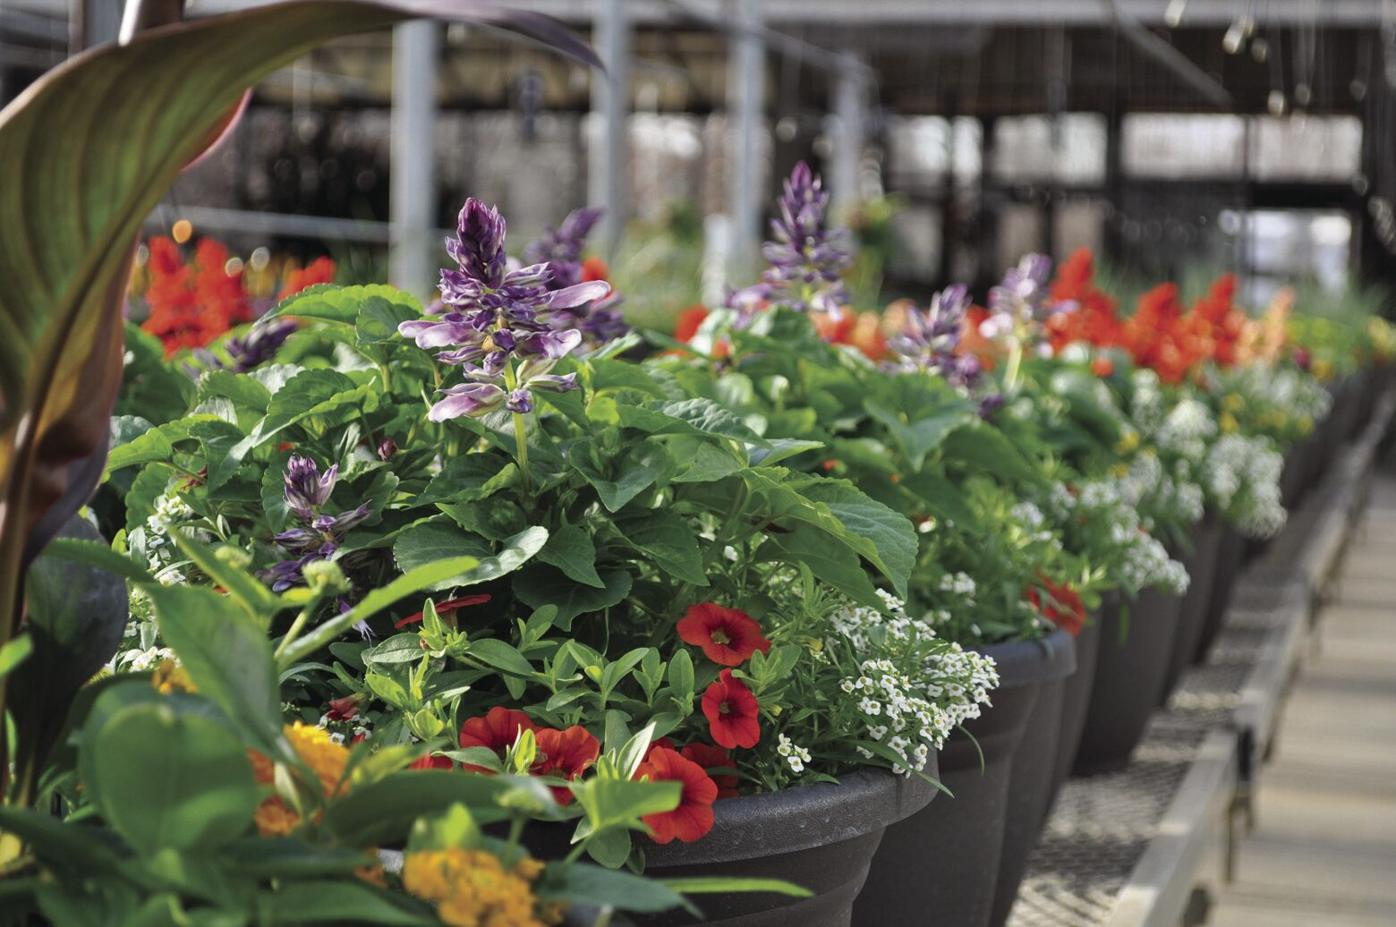 Spring Home Improevment: Maple Grove nursery, greenhouse sees increase in customers